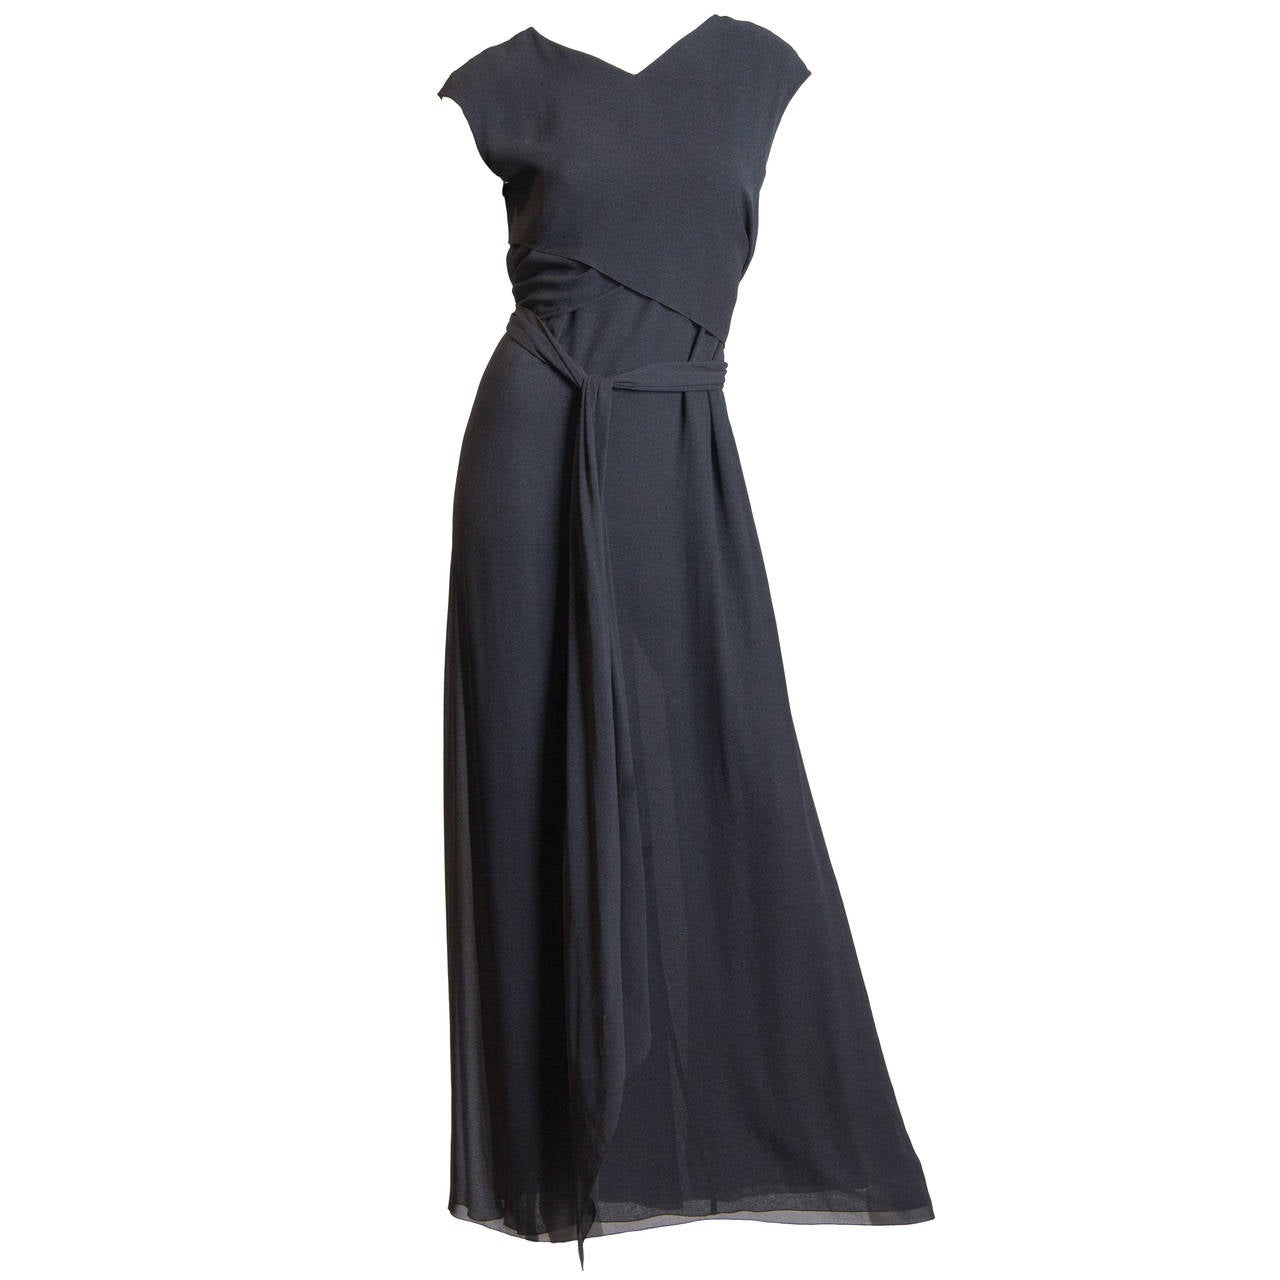 Slate Grey Crepe Dress from Chanel 1